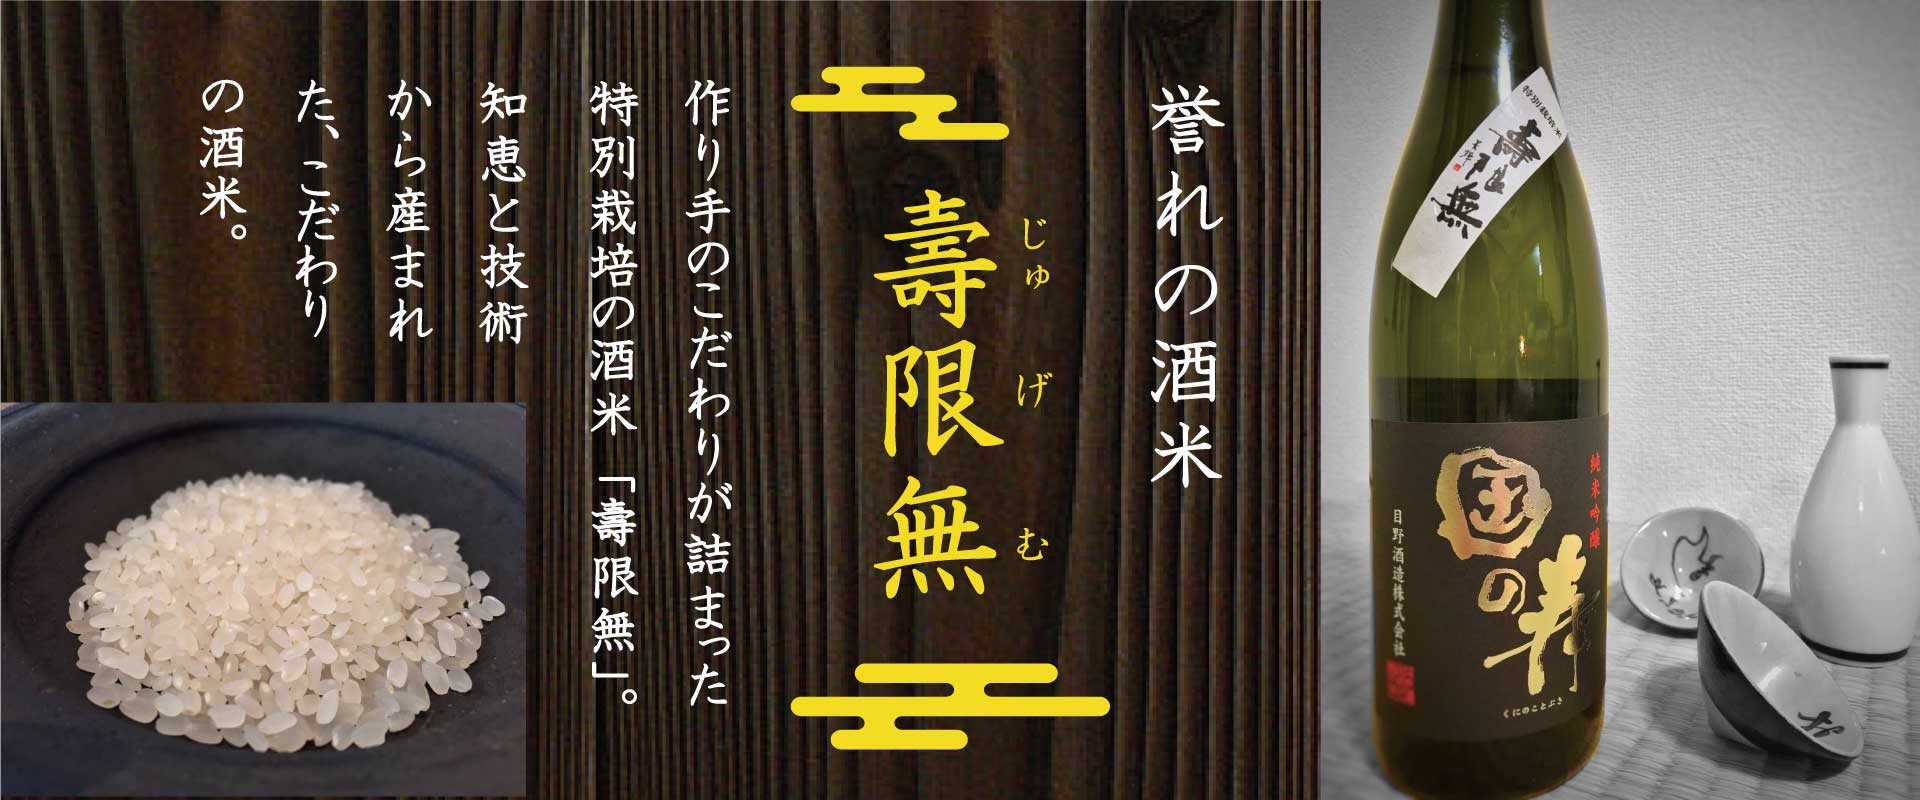 Jugemu -unique rice used for making sake